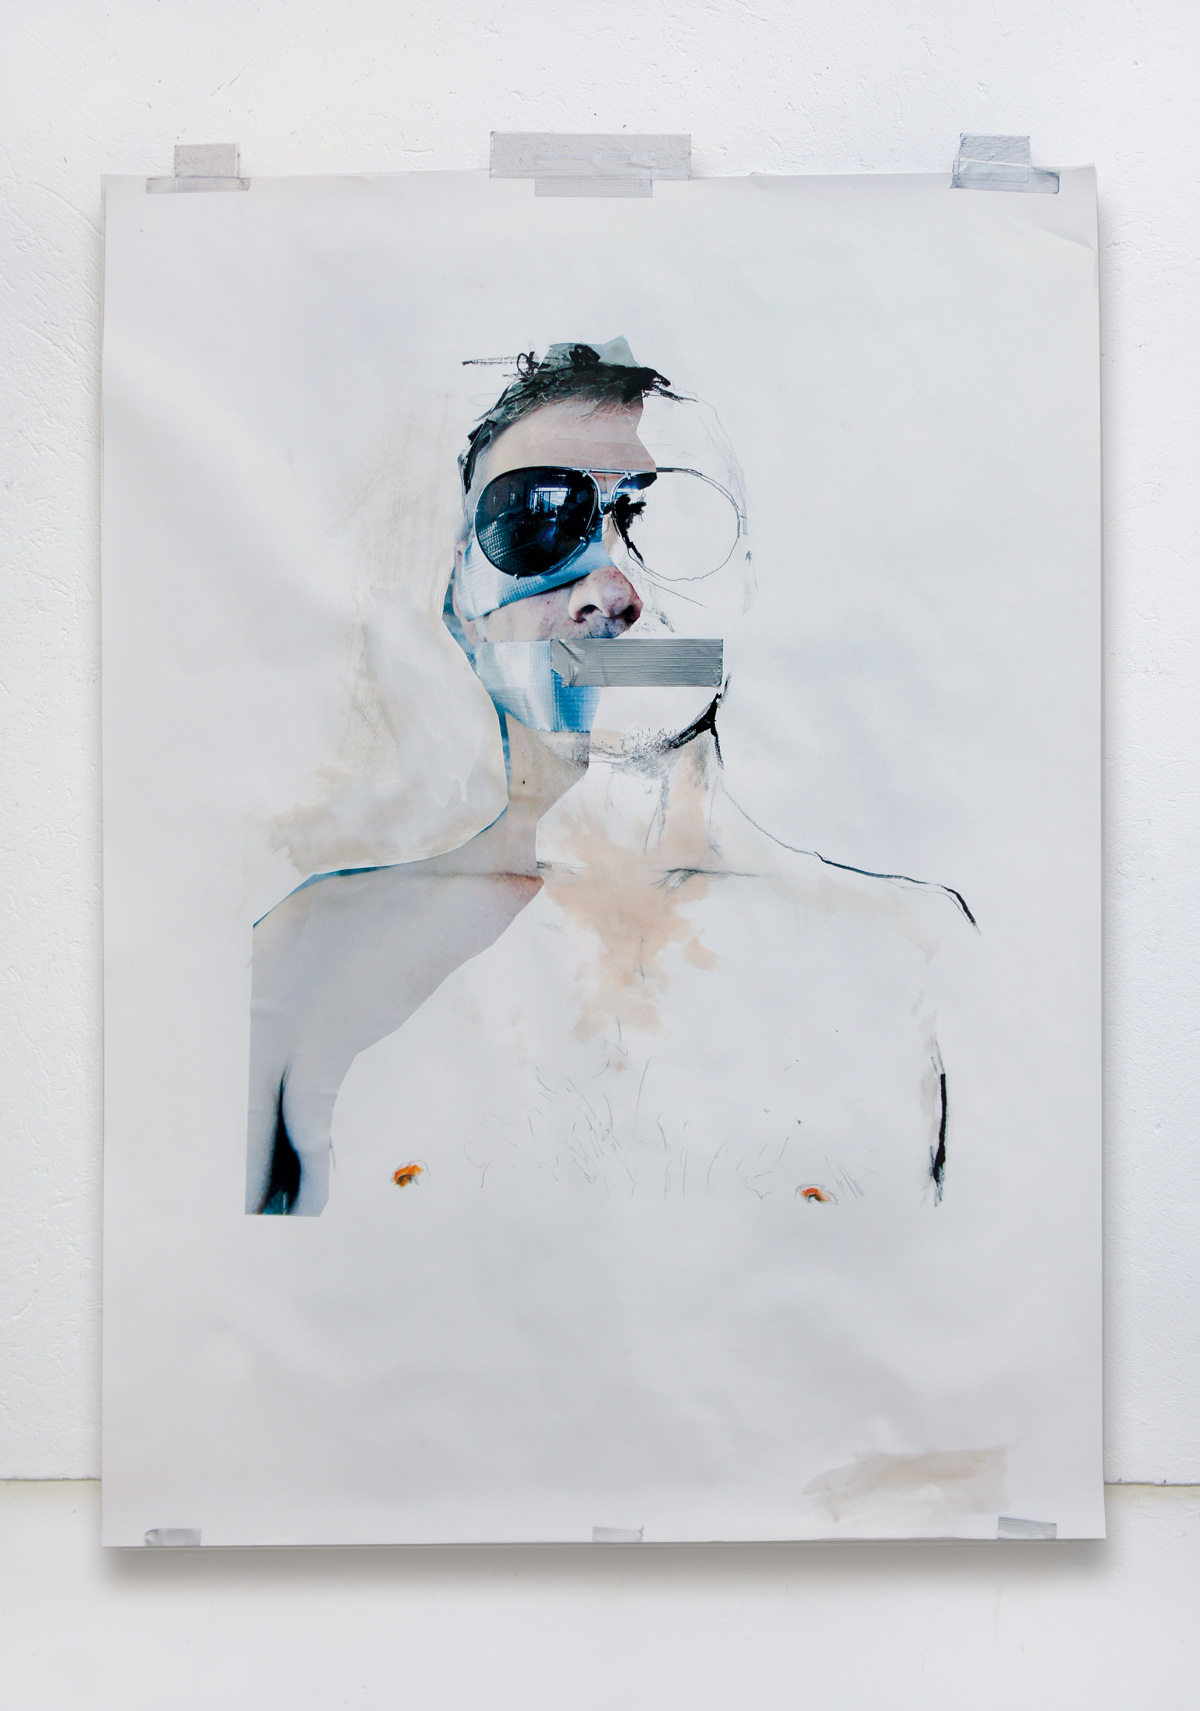 Patrick, oil and tape on paper, 120 x 160 cm